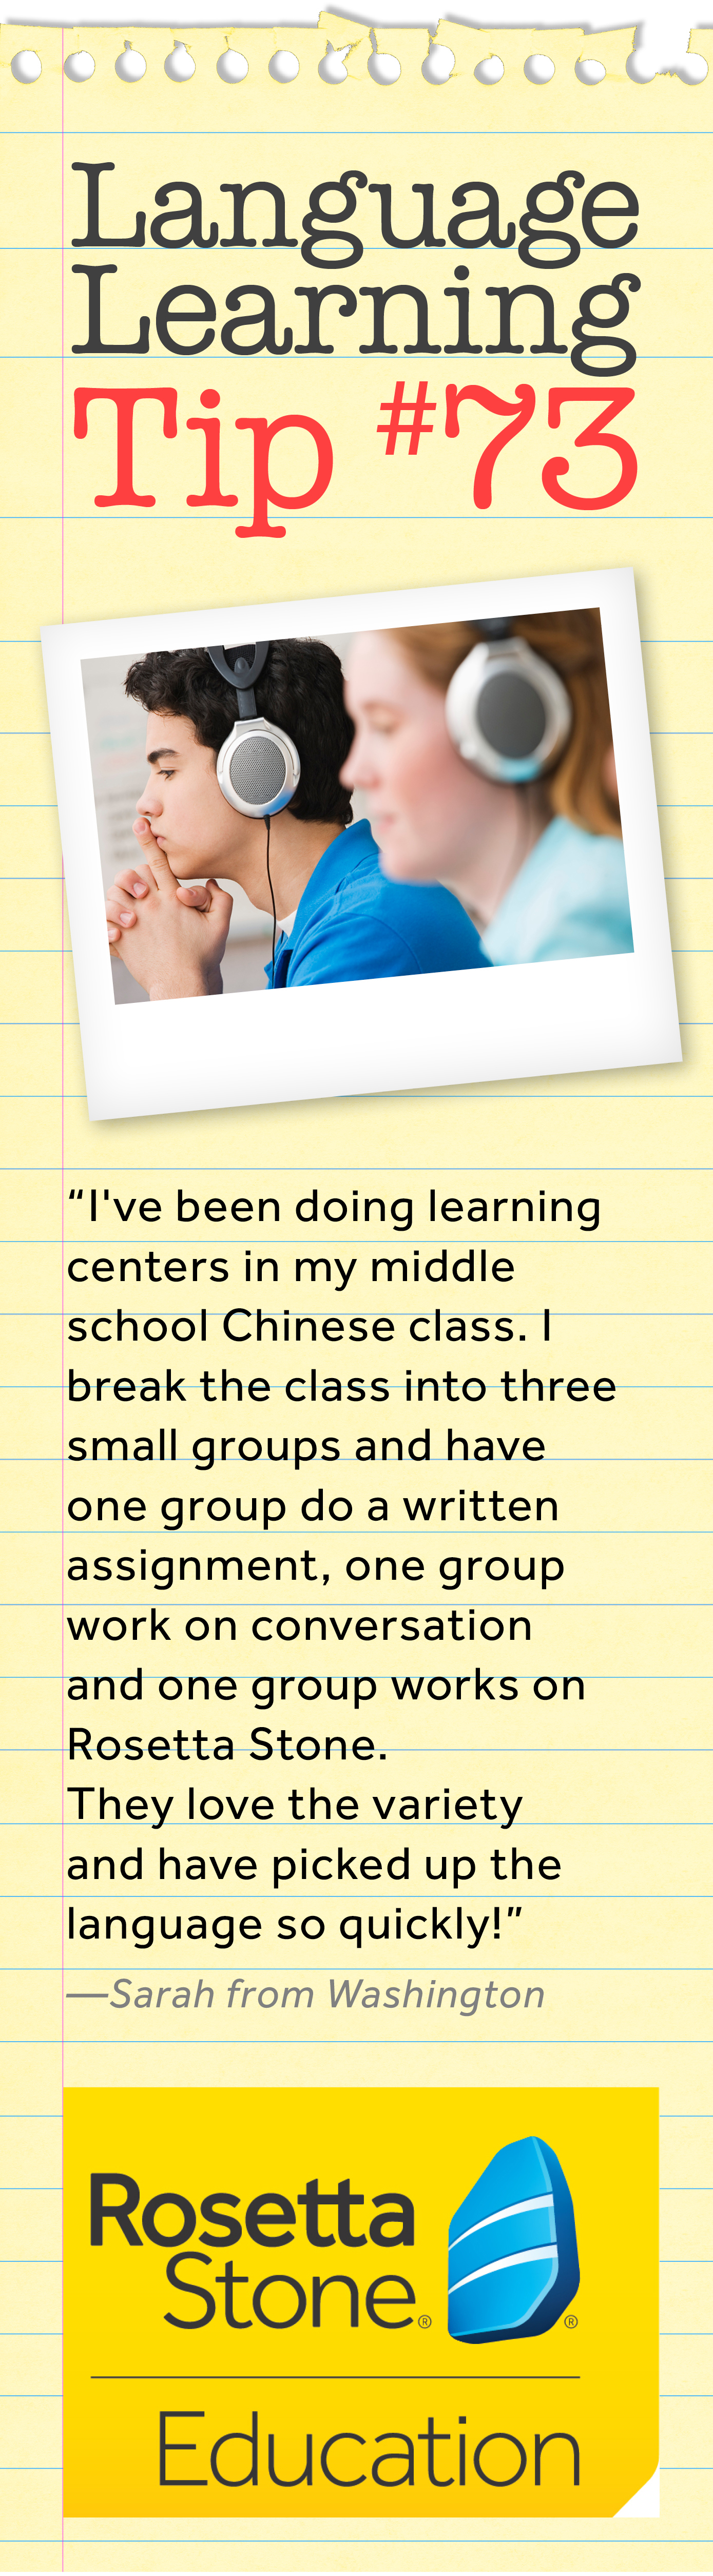 This Teacher Creates Learning Centers In Her Chinese Class